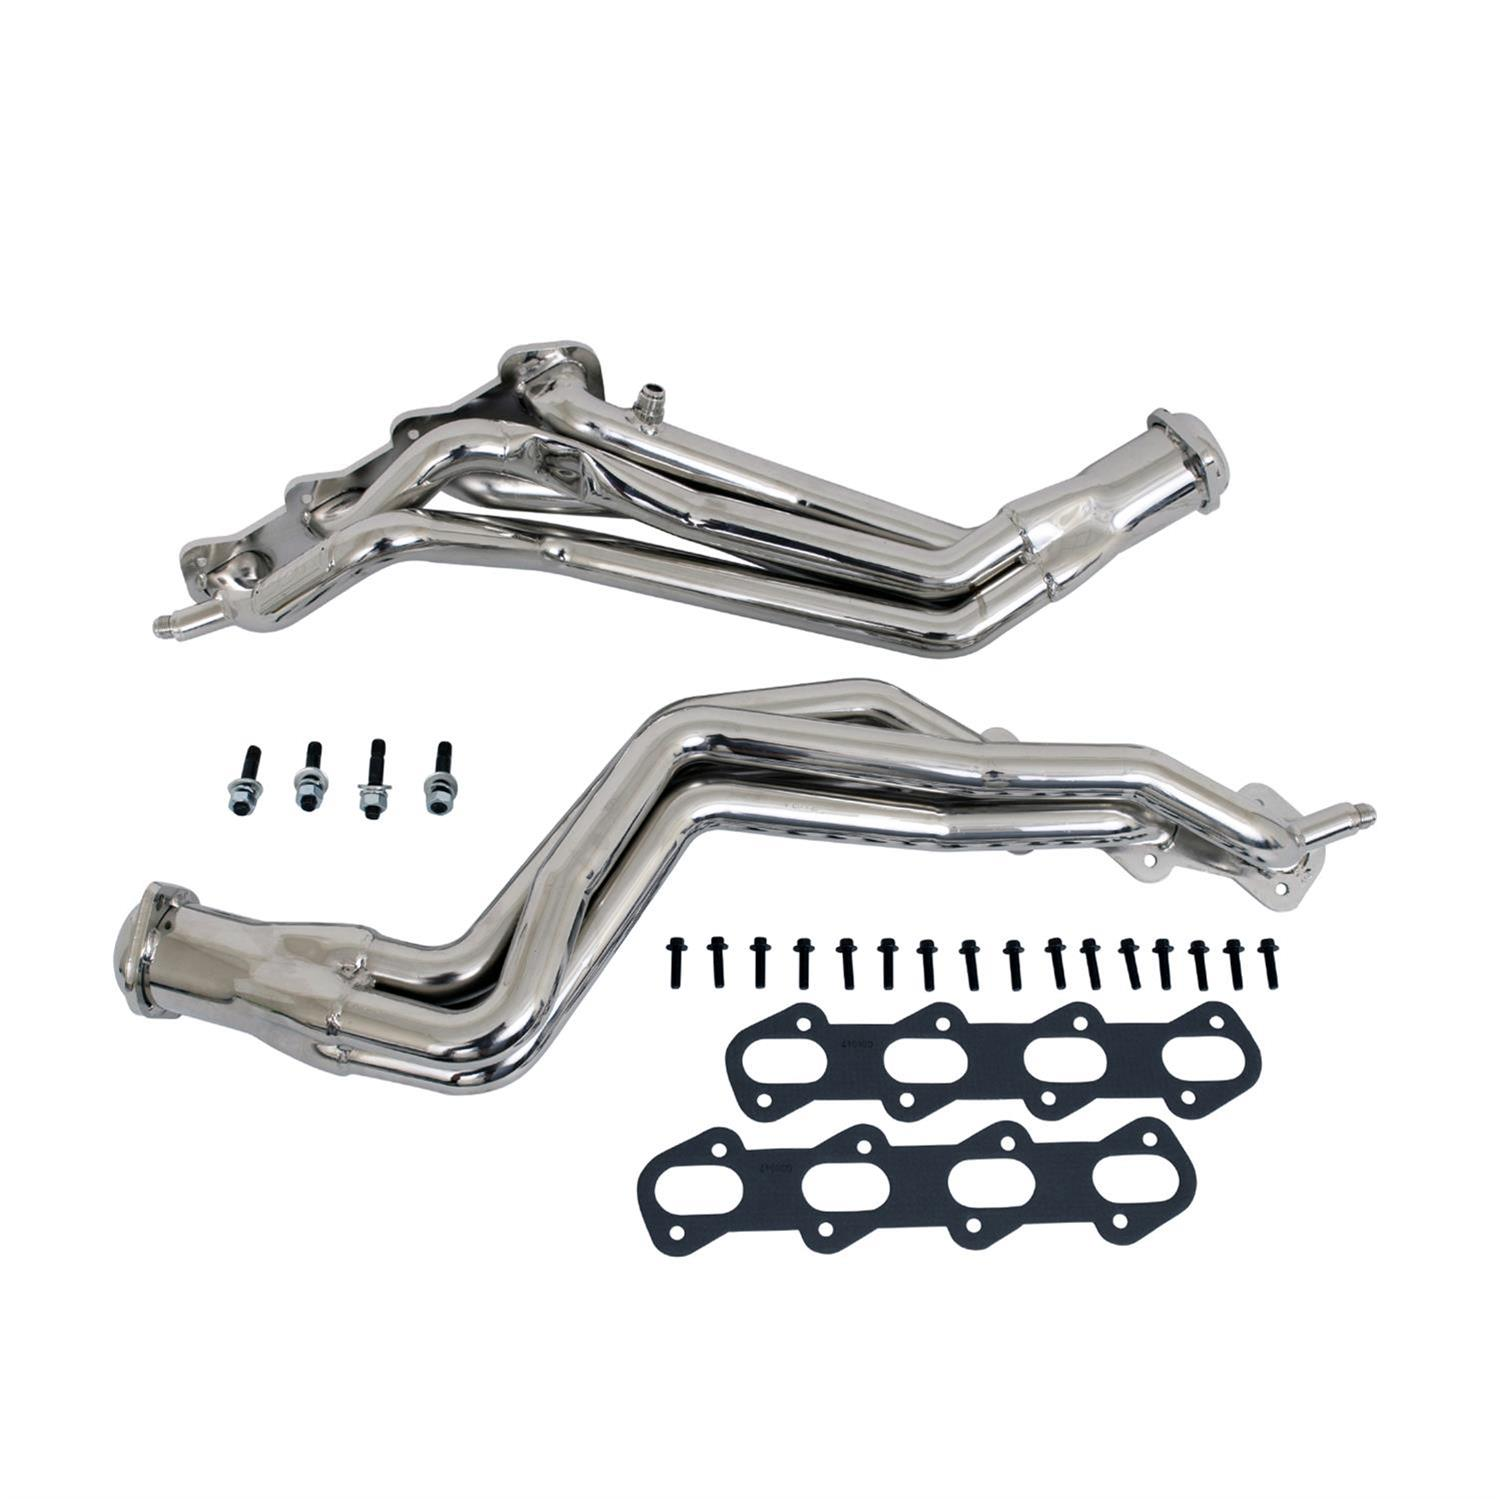 Bbk Headers Full Length Steel Chrome Ford Mustang Cobra 4